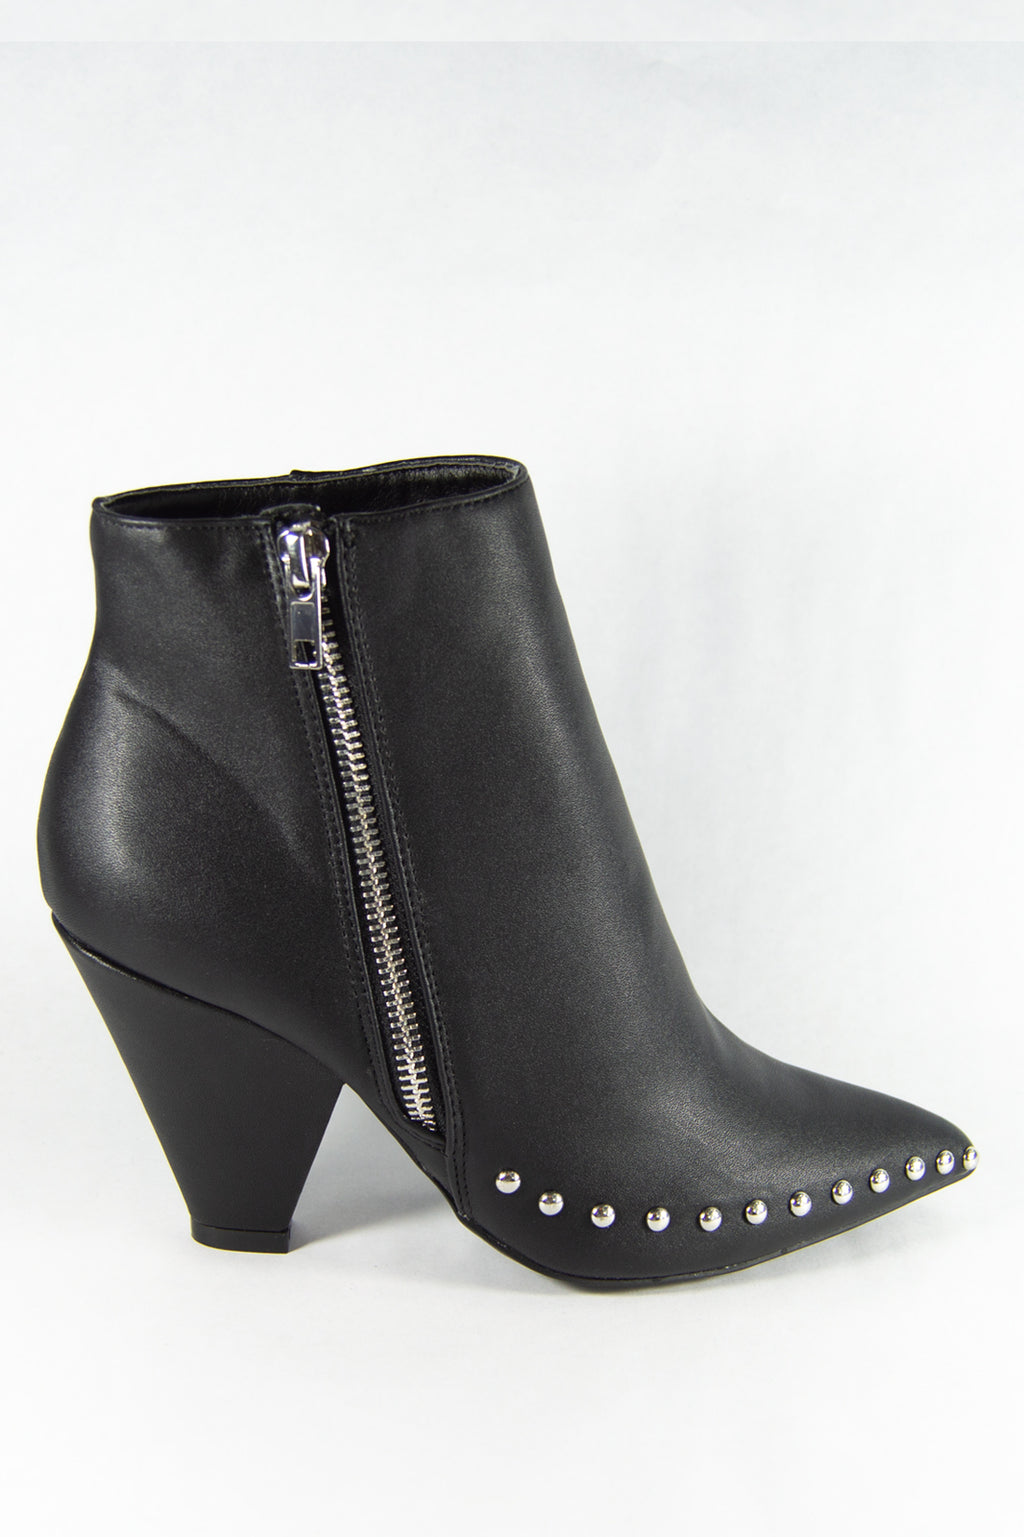 Vandal - Black Studded Ankle Booties